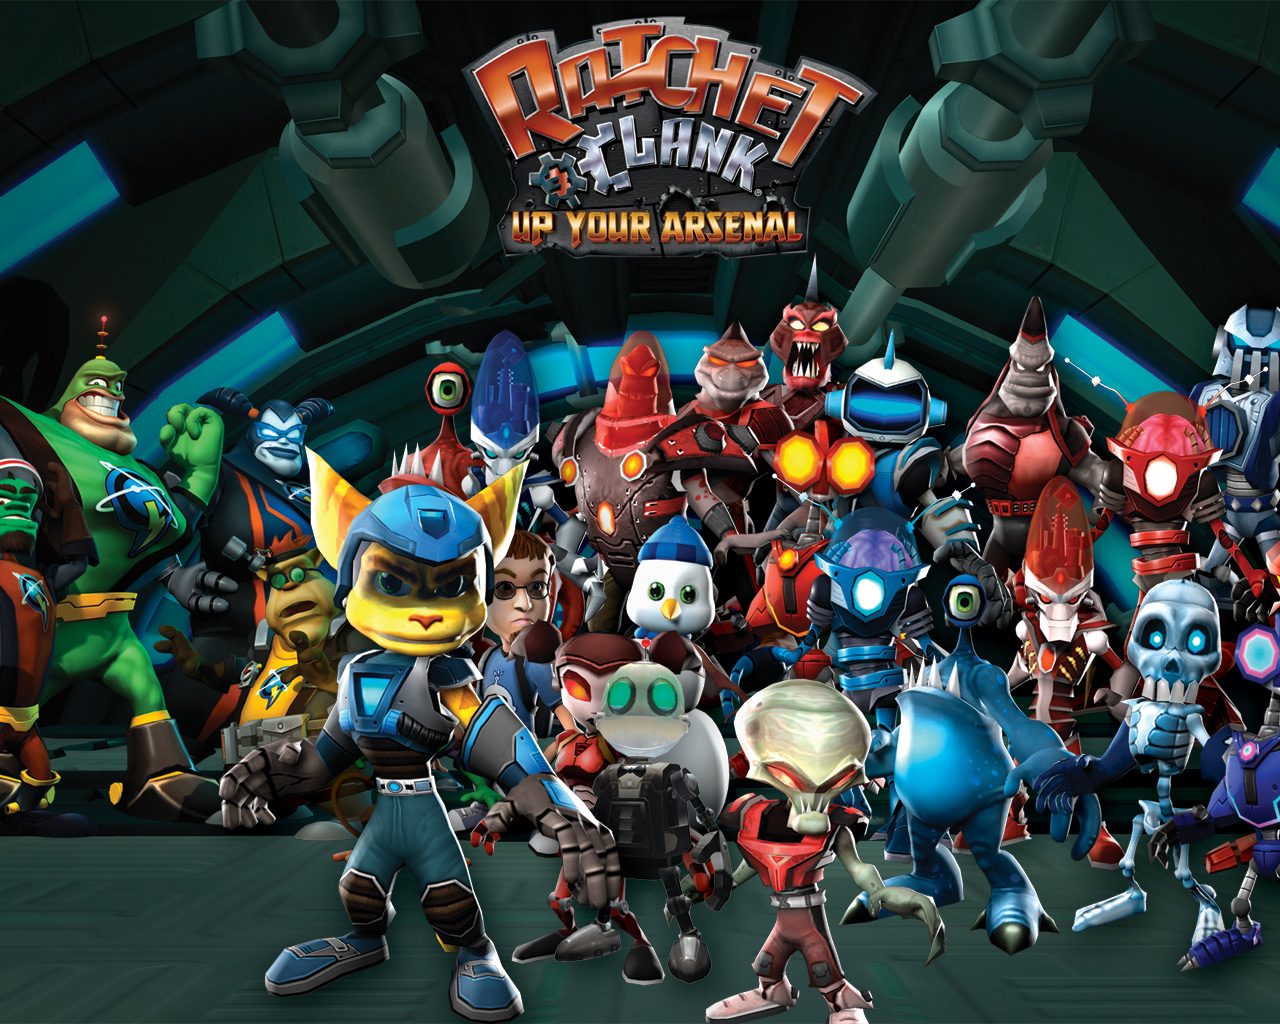 Ratchet And Clank Wallpaper Hd Posted By John Thompson